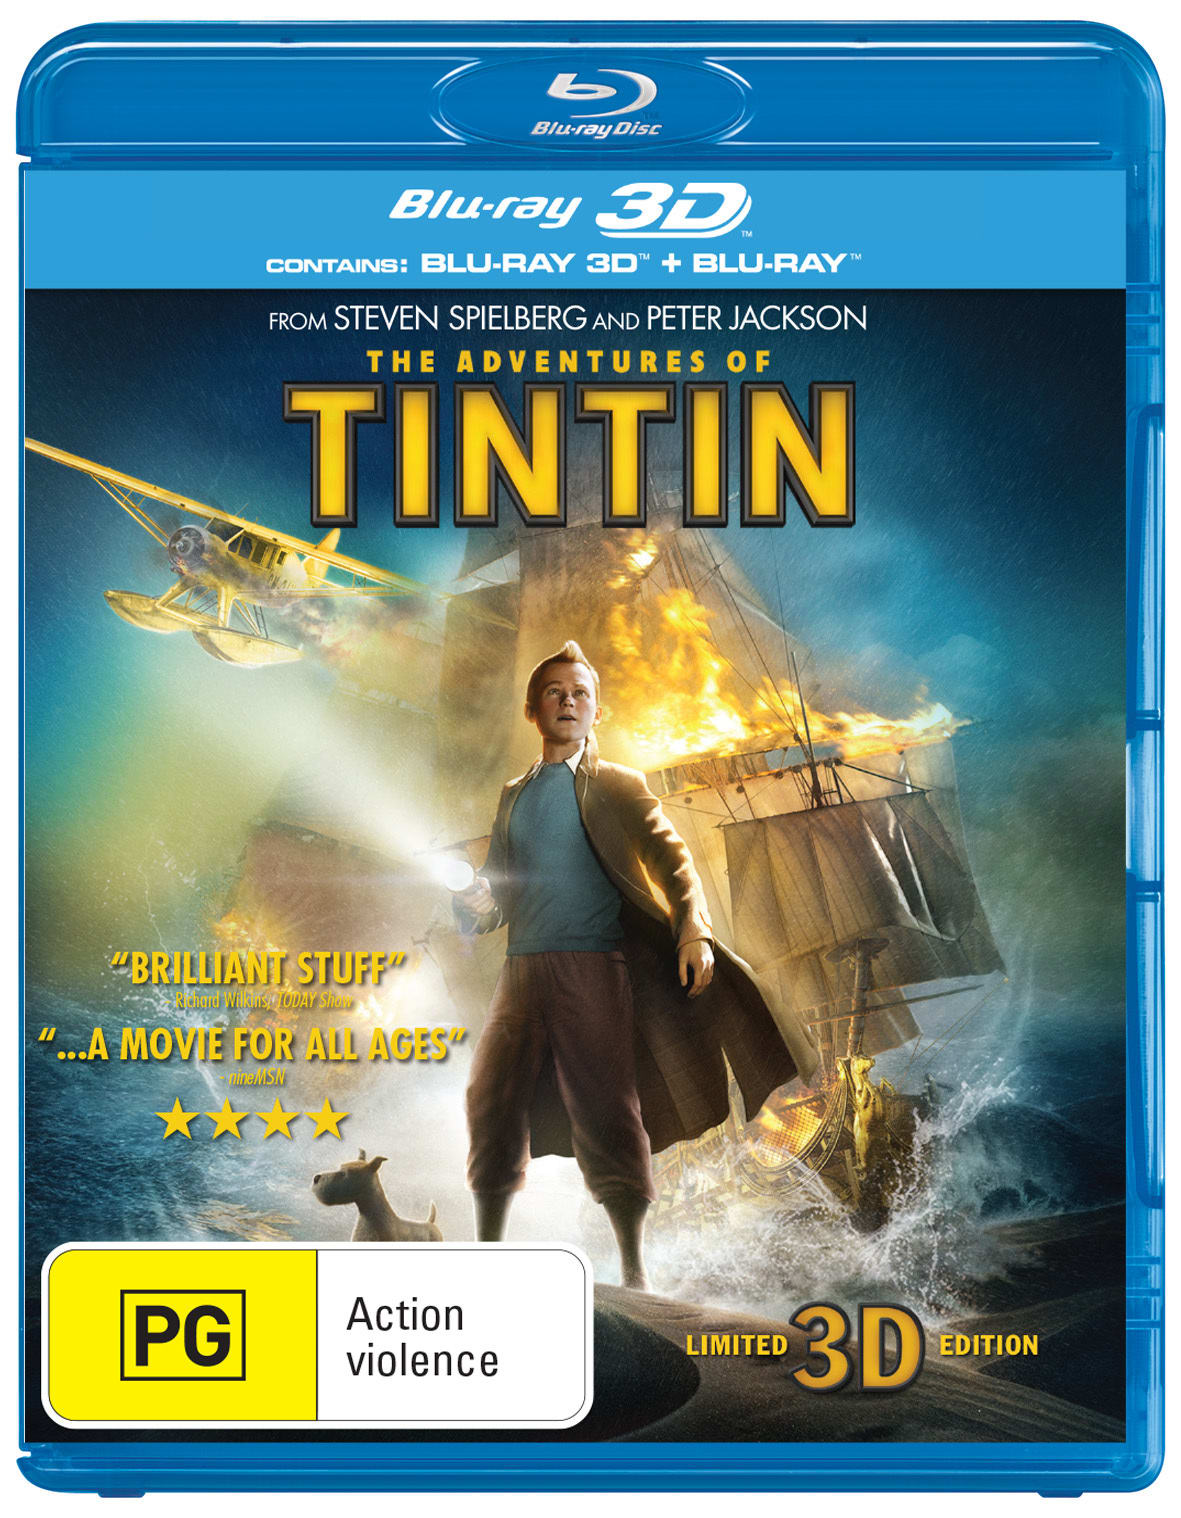 The Adventures of Tintin: The Secret of the Unicorn (3D Edition with 2D Edition) [Blu-ray]